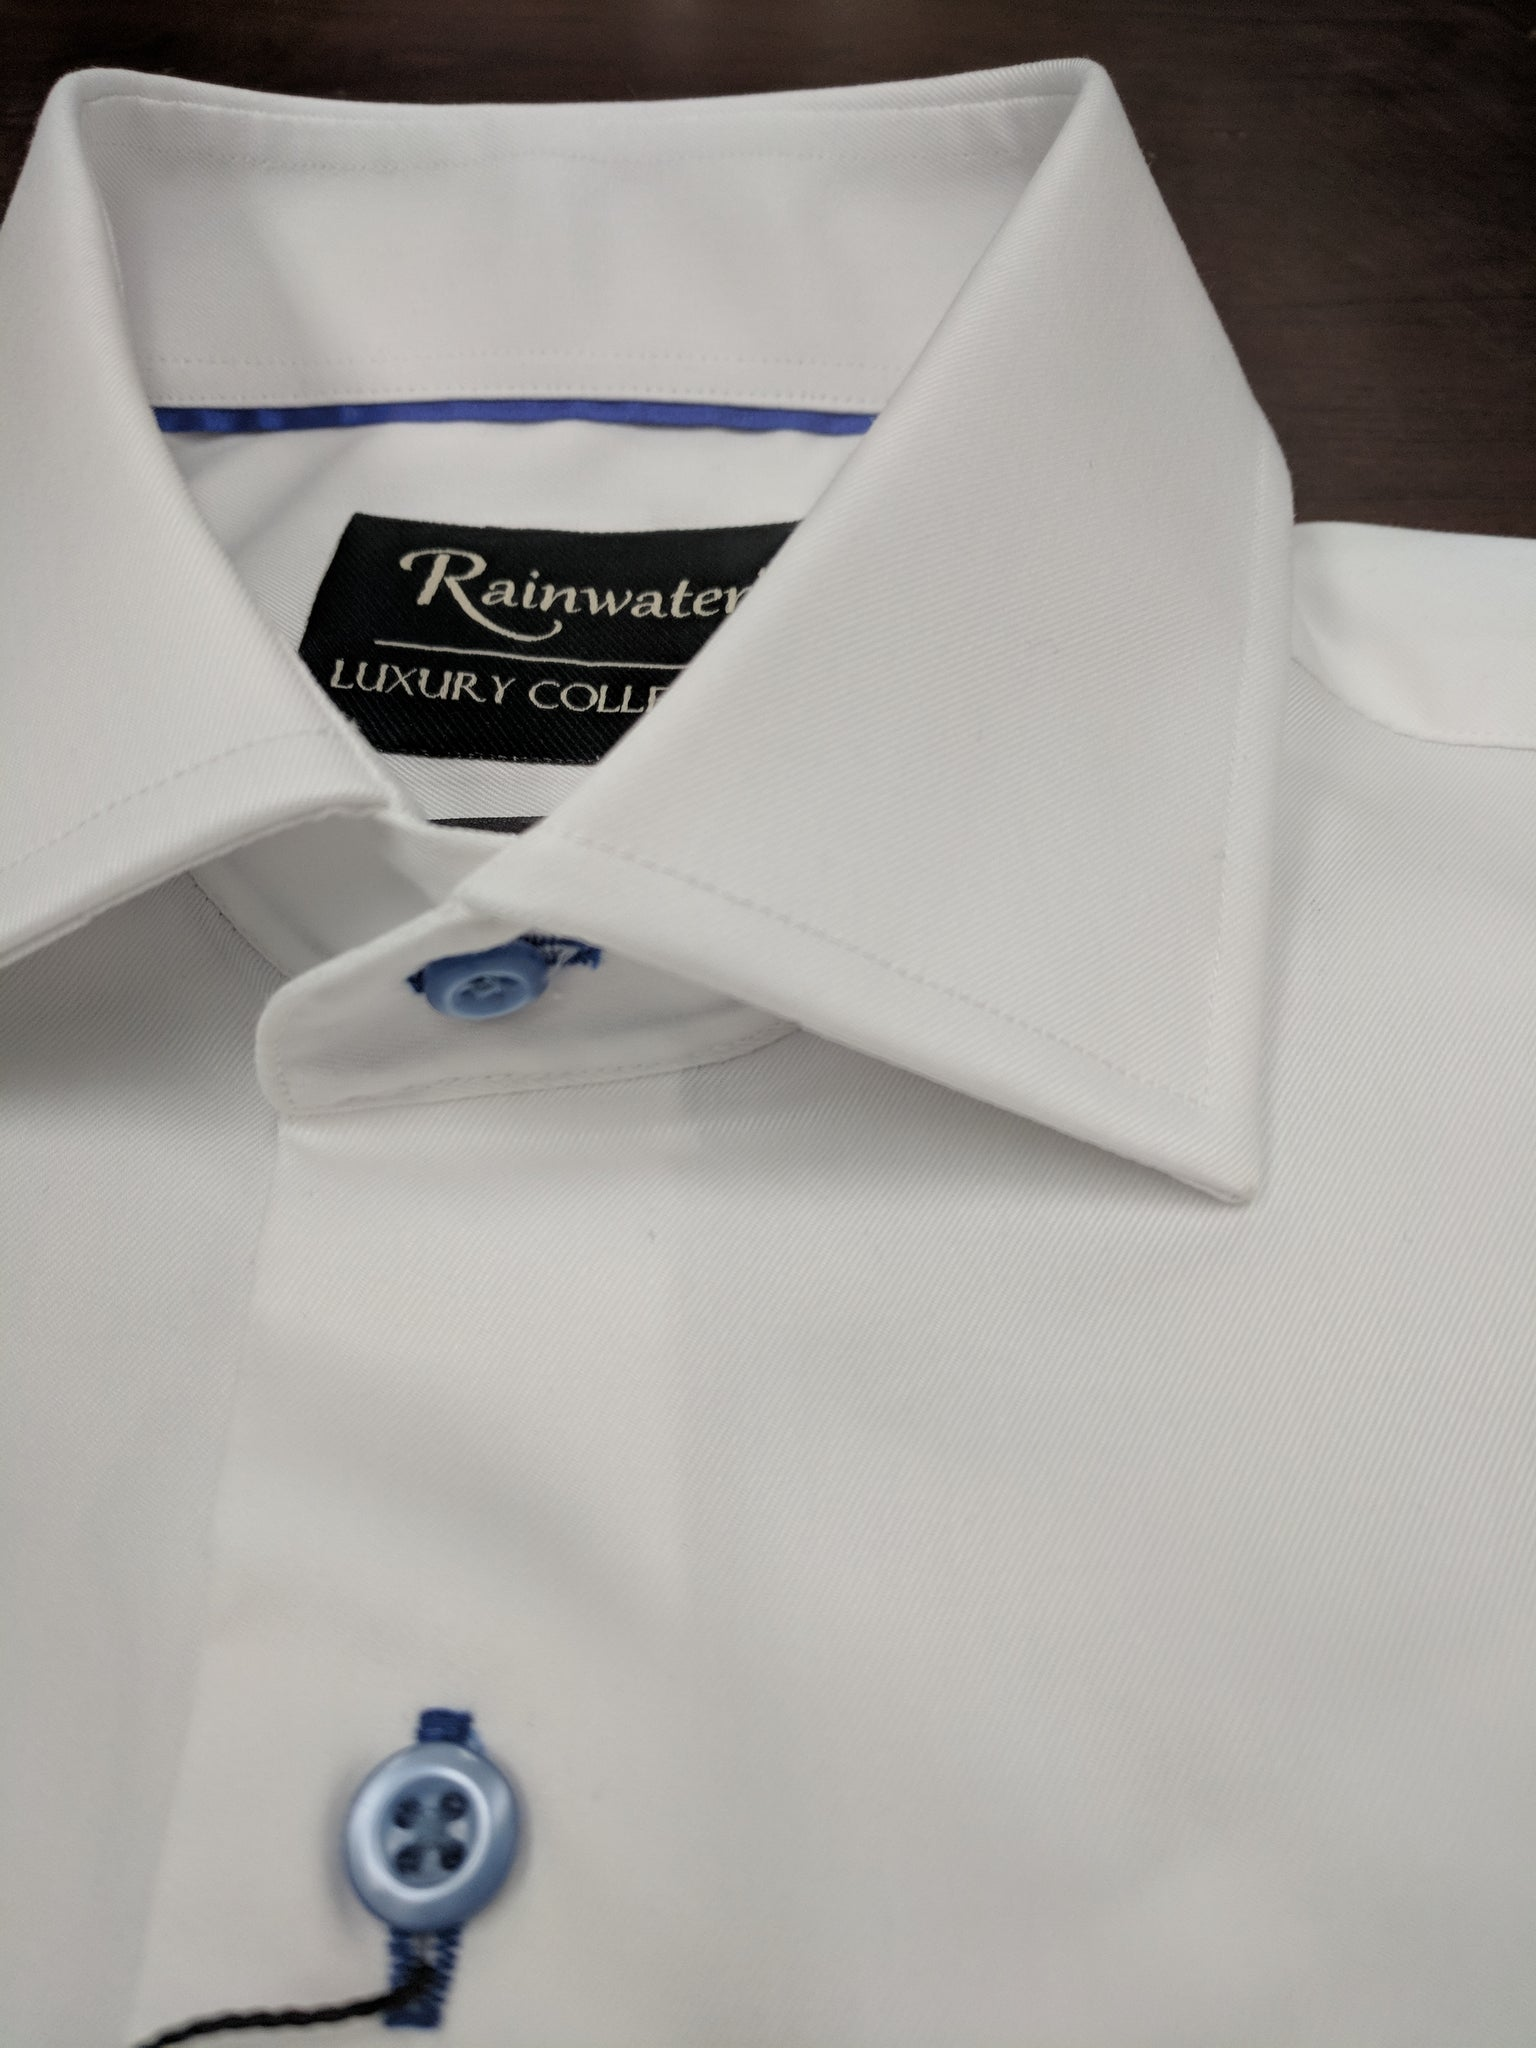 Rainwater's White Dress Shirt with Blue Buttons - Rainwater's Men's Clothing and Tuxedo Rental